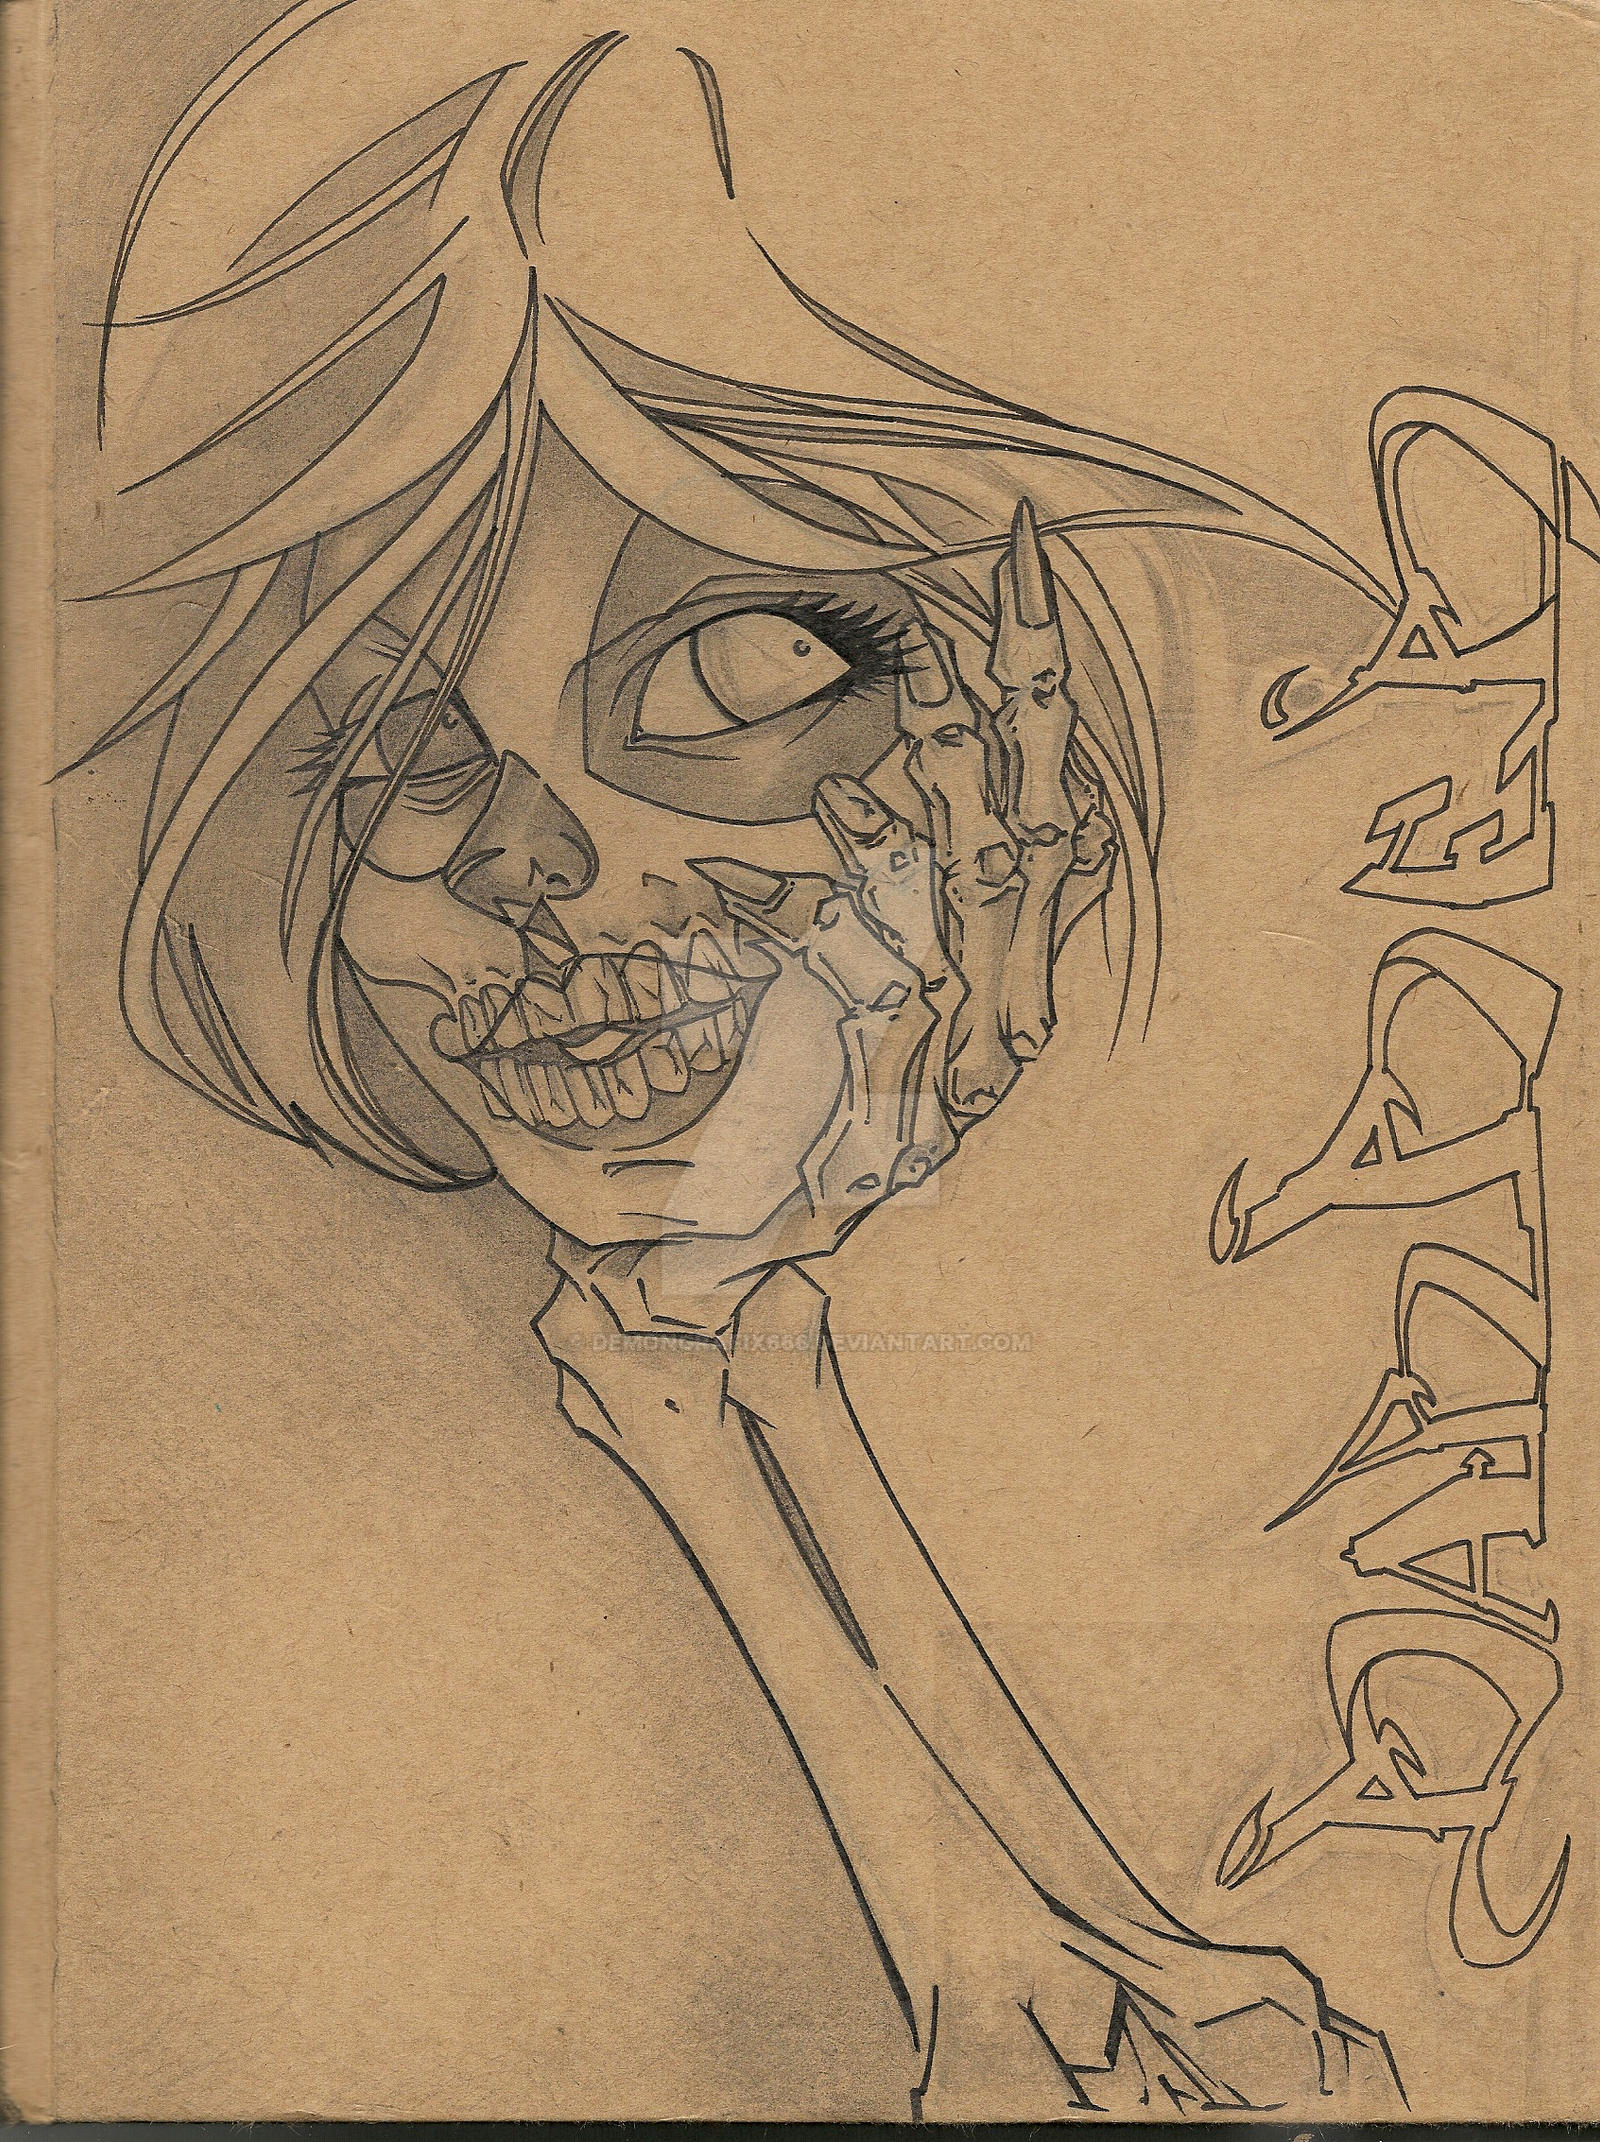 Book Cover Design Sketch : Sketch book cover by demongrafix on deviantart